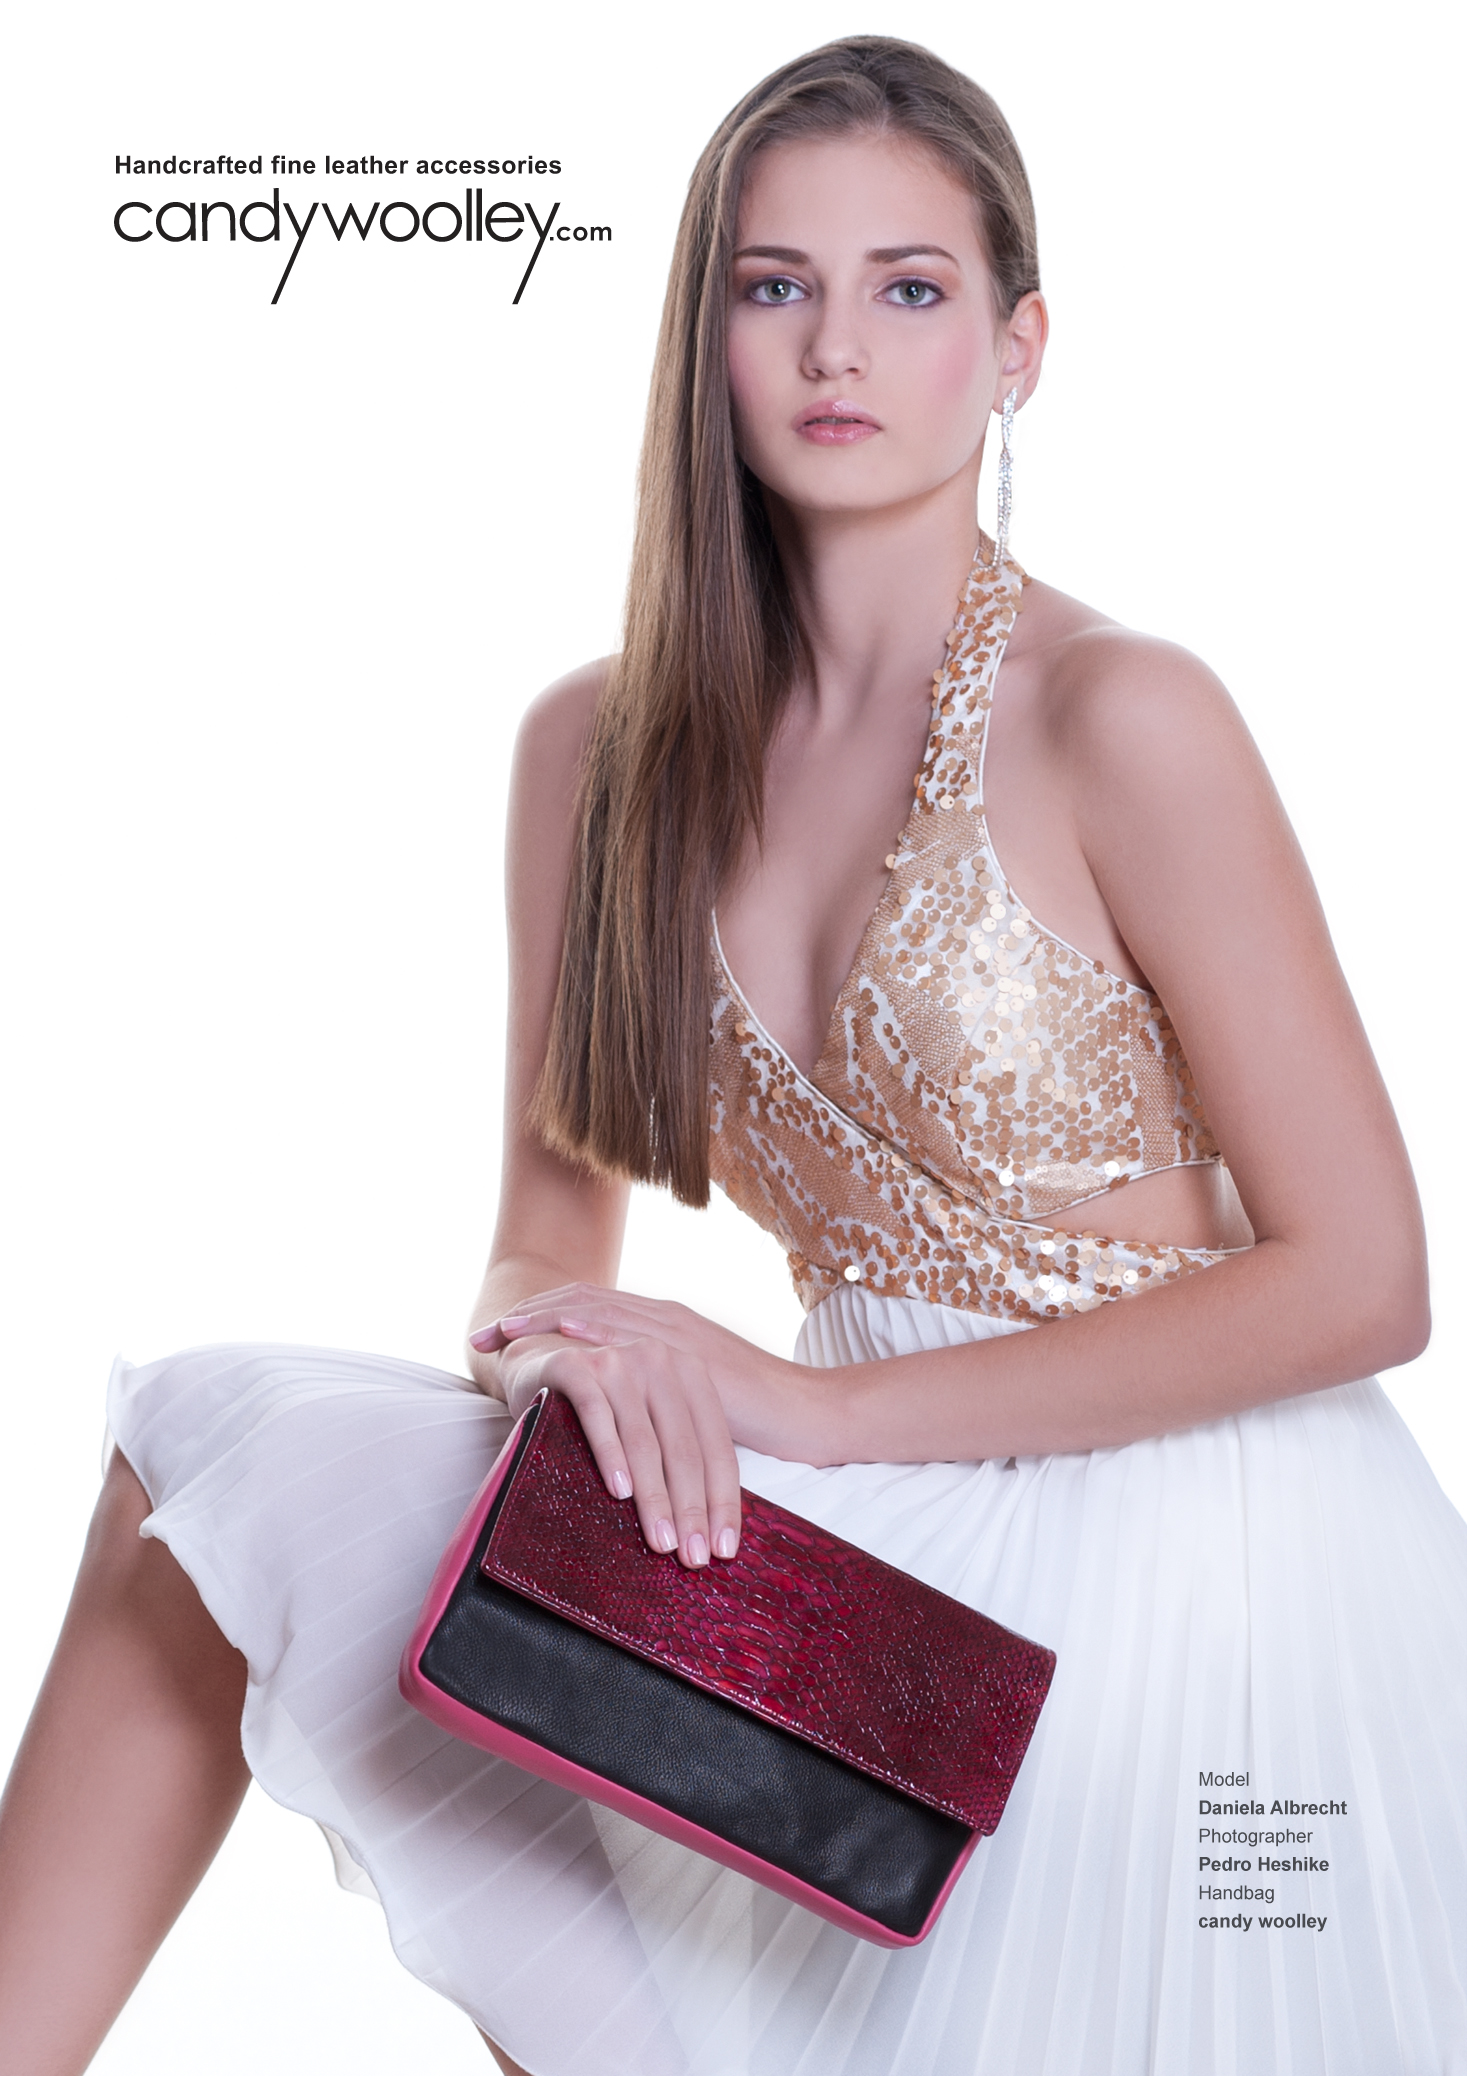 Miss South Florida Teen USA Daniela Albrecht with a Candy Woolley tri-color pink python clutch